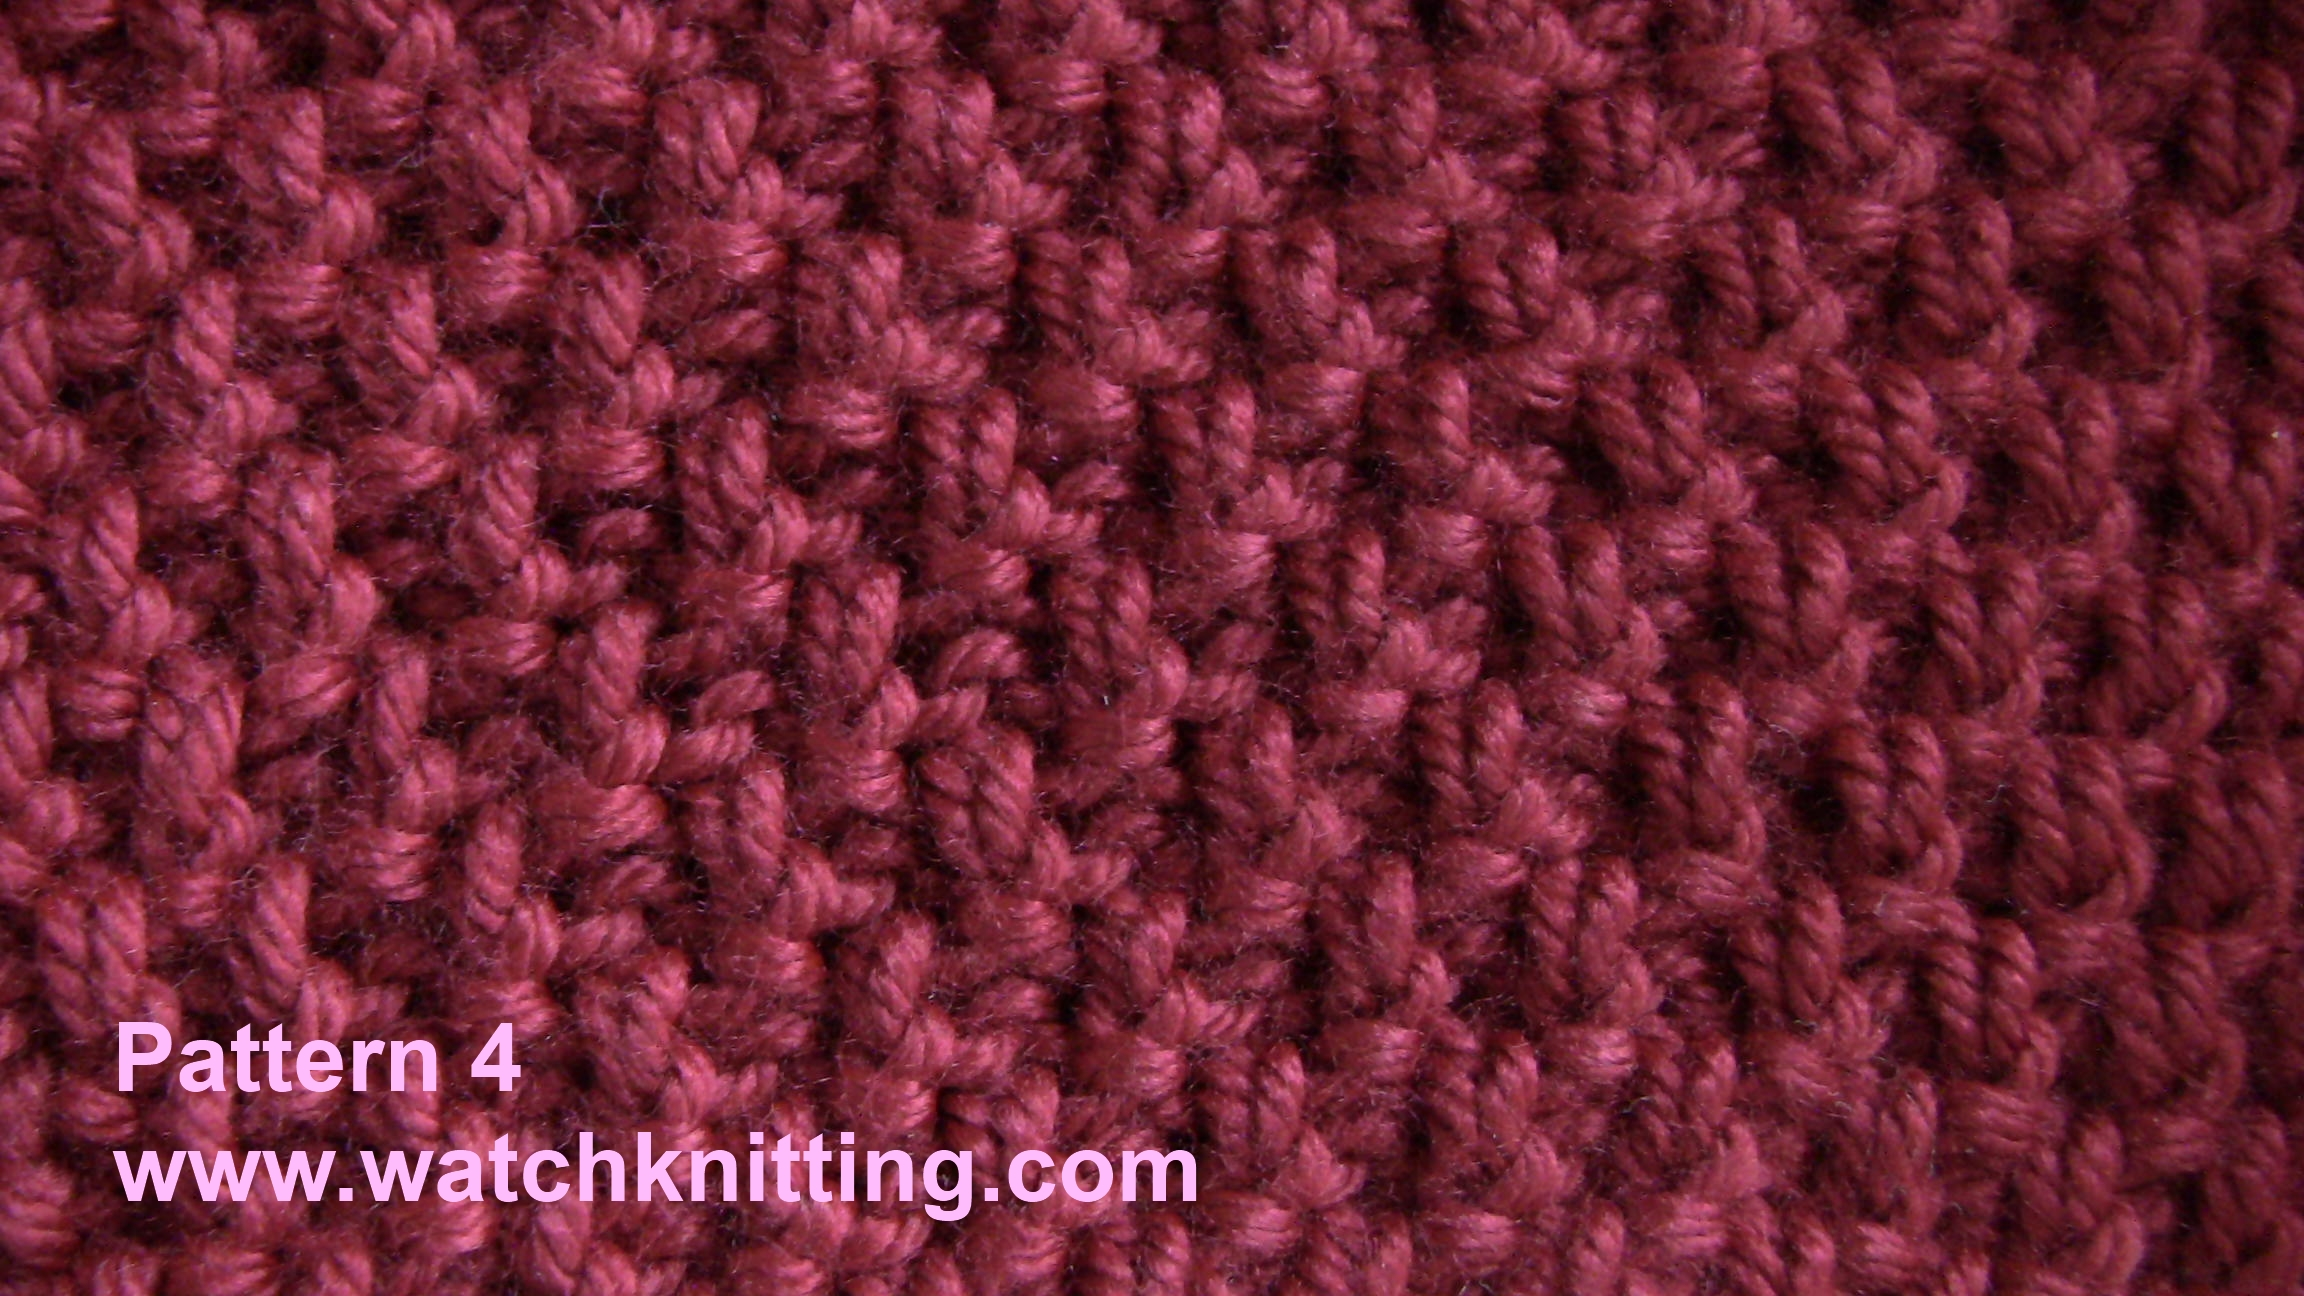 Knitting Stitches Patterns Easy : Basic Knitting Stitches Watch knitting